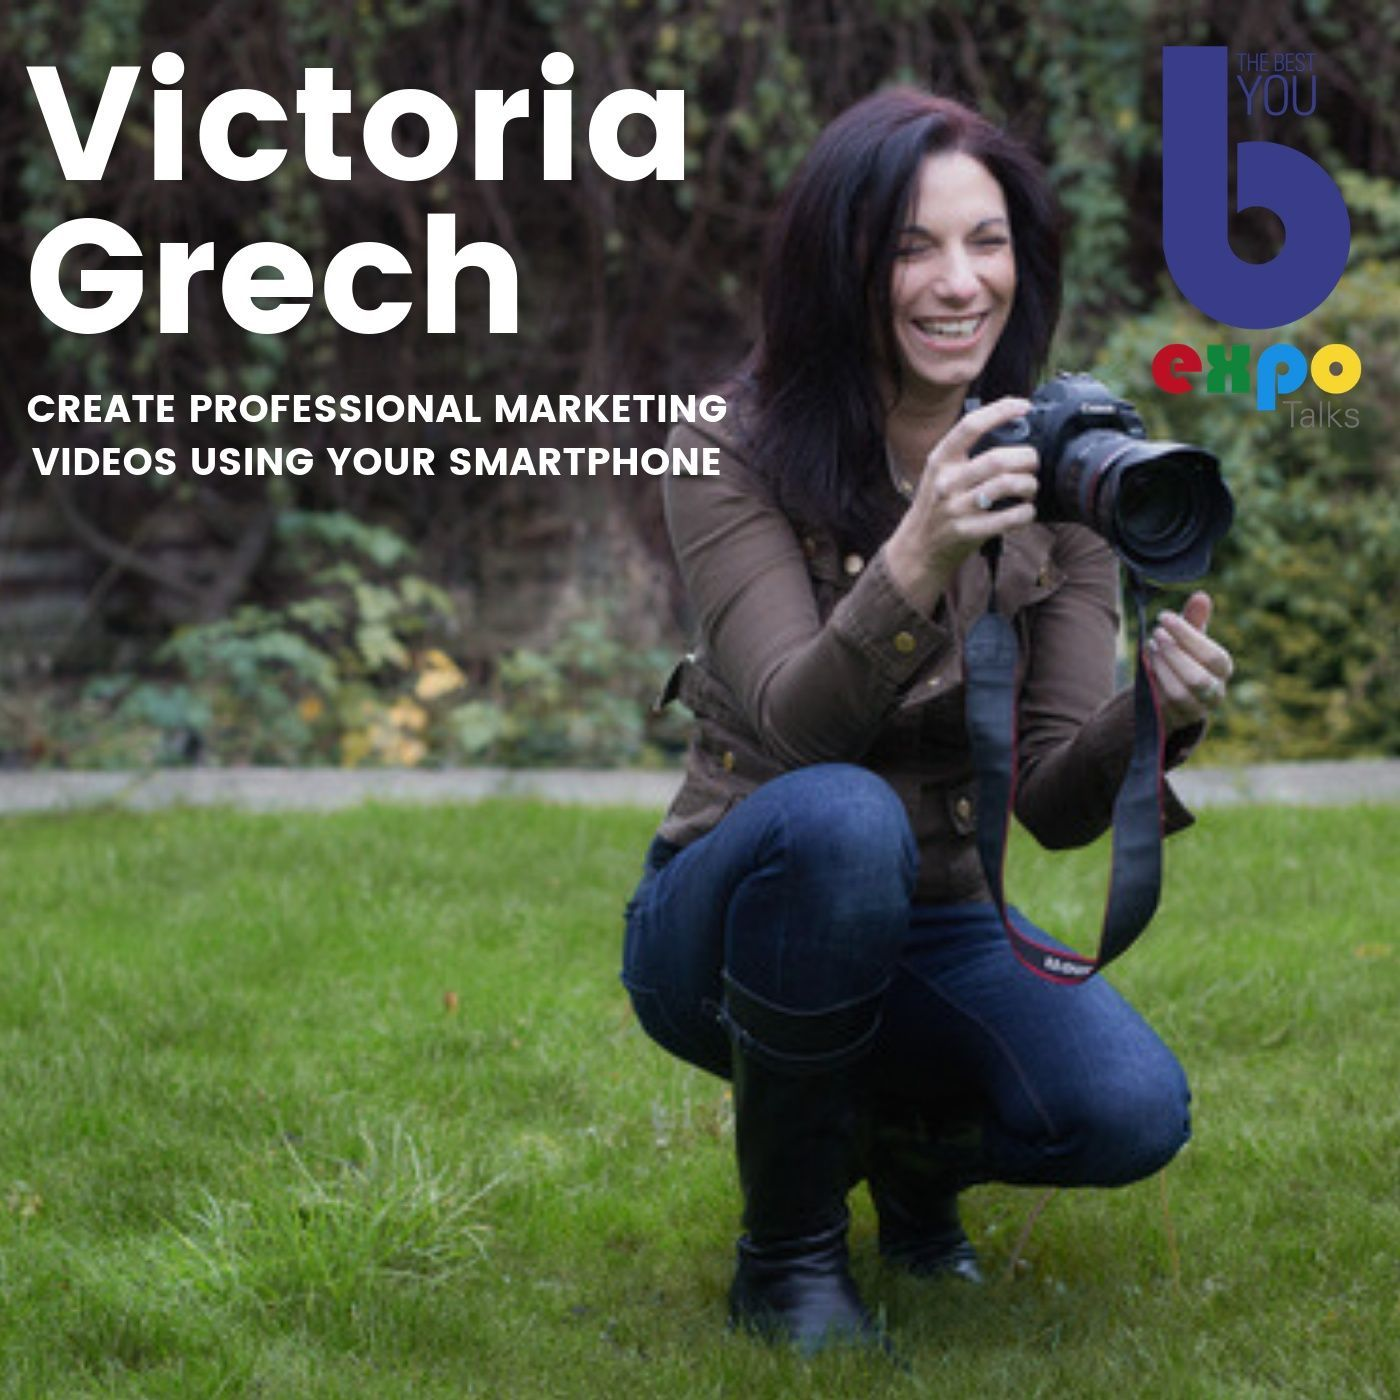 Listen to Victoria Grech at The Best You EXPO